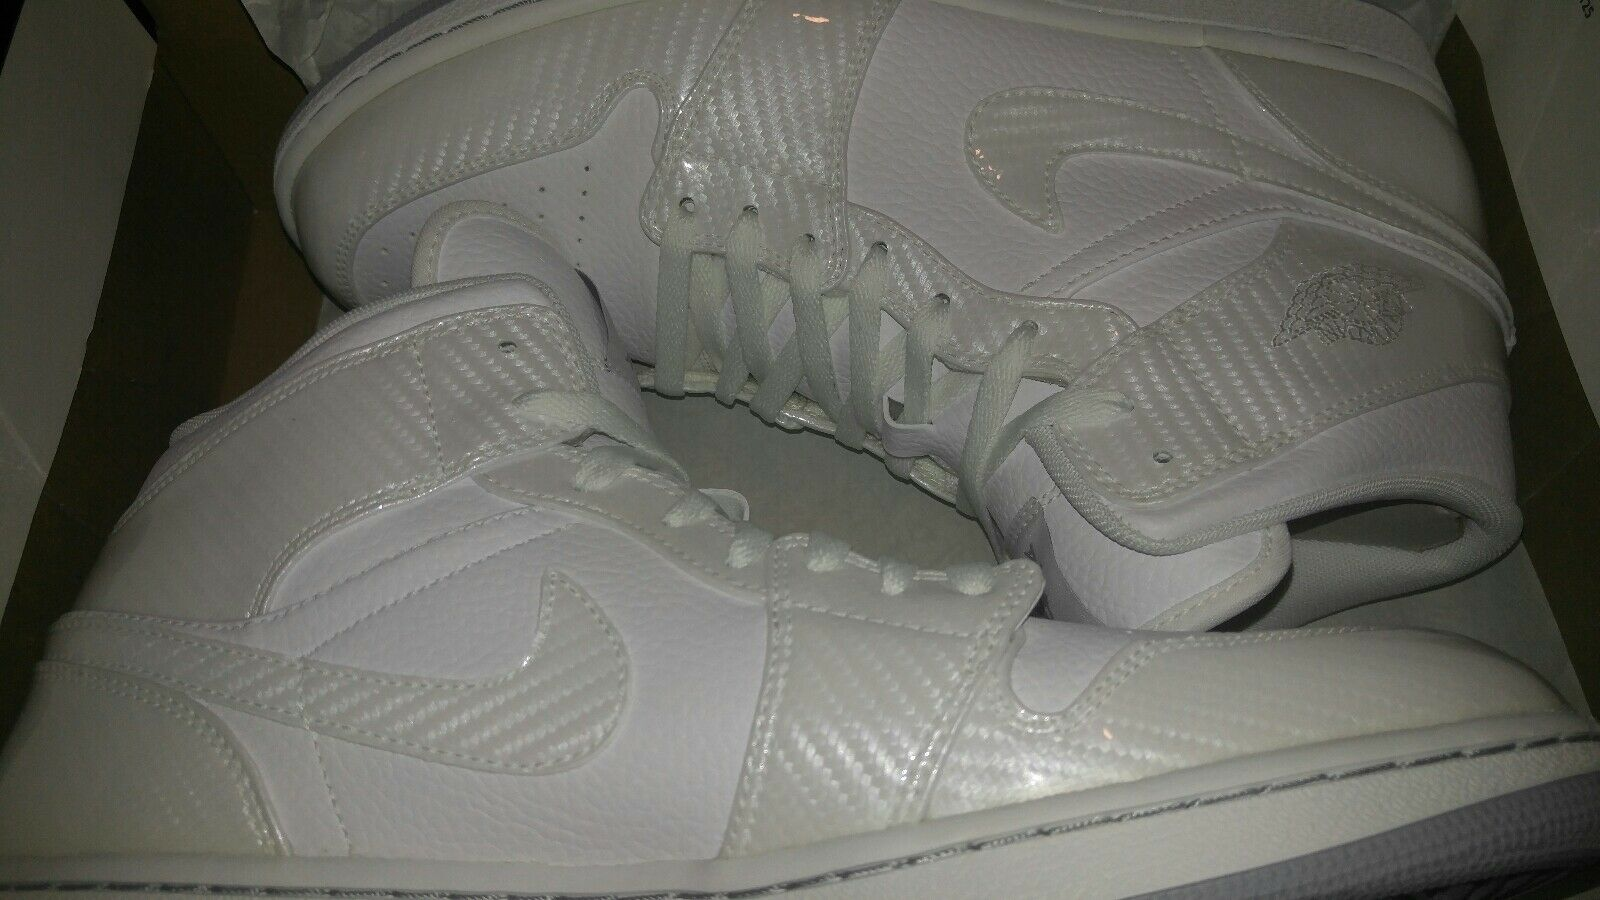 Nike AirJordan 1 Phat White Carbon Fiber-Wolf Grey. Comfortable The latest discount shoes for men and women